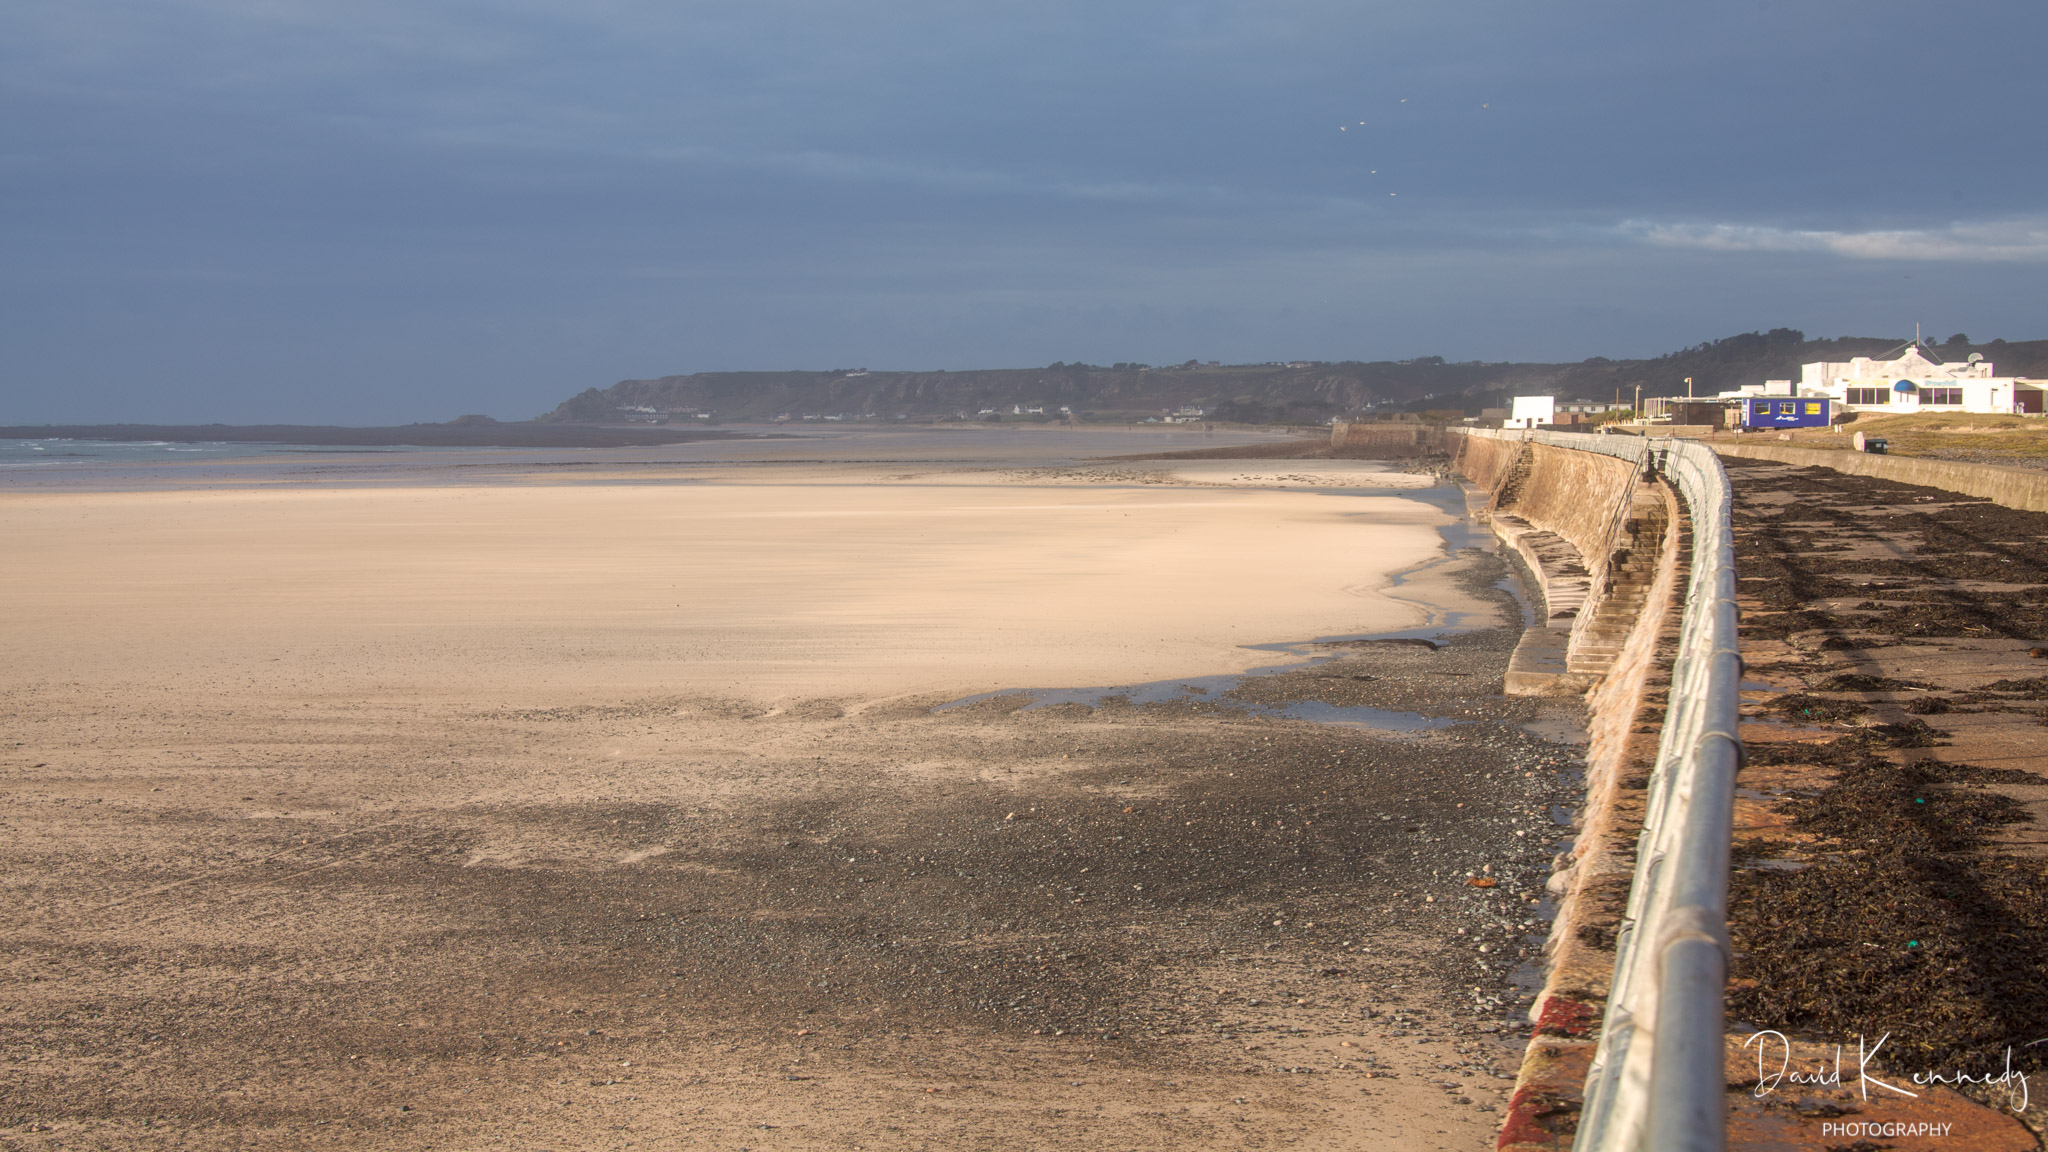 View along the sea wall on St Ouen's Bay, Jersey, showing wide sandy beach